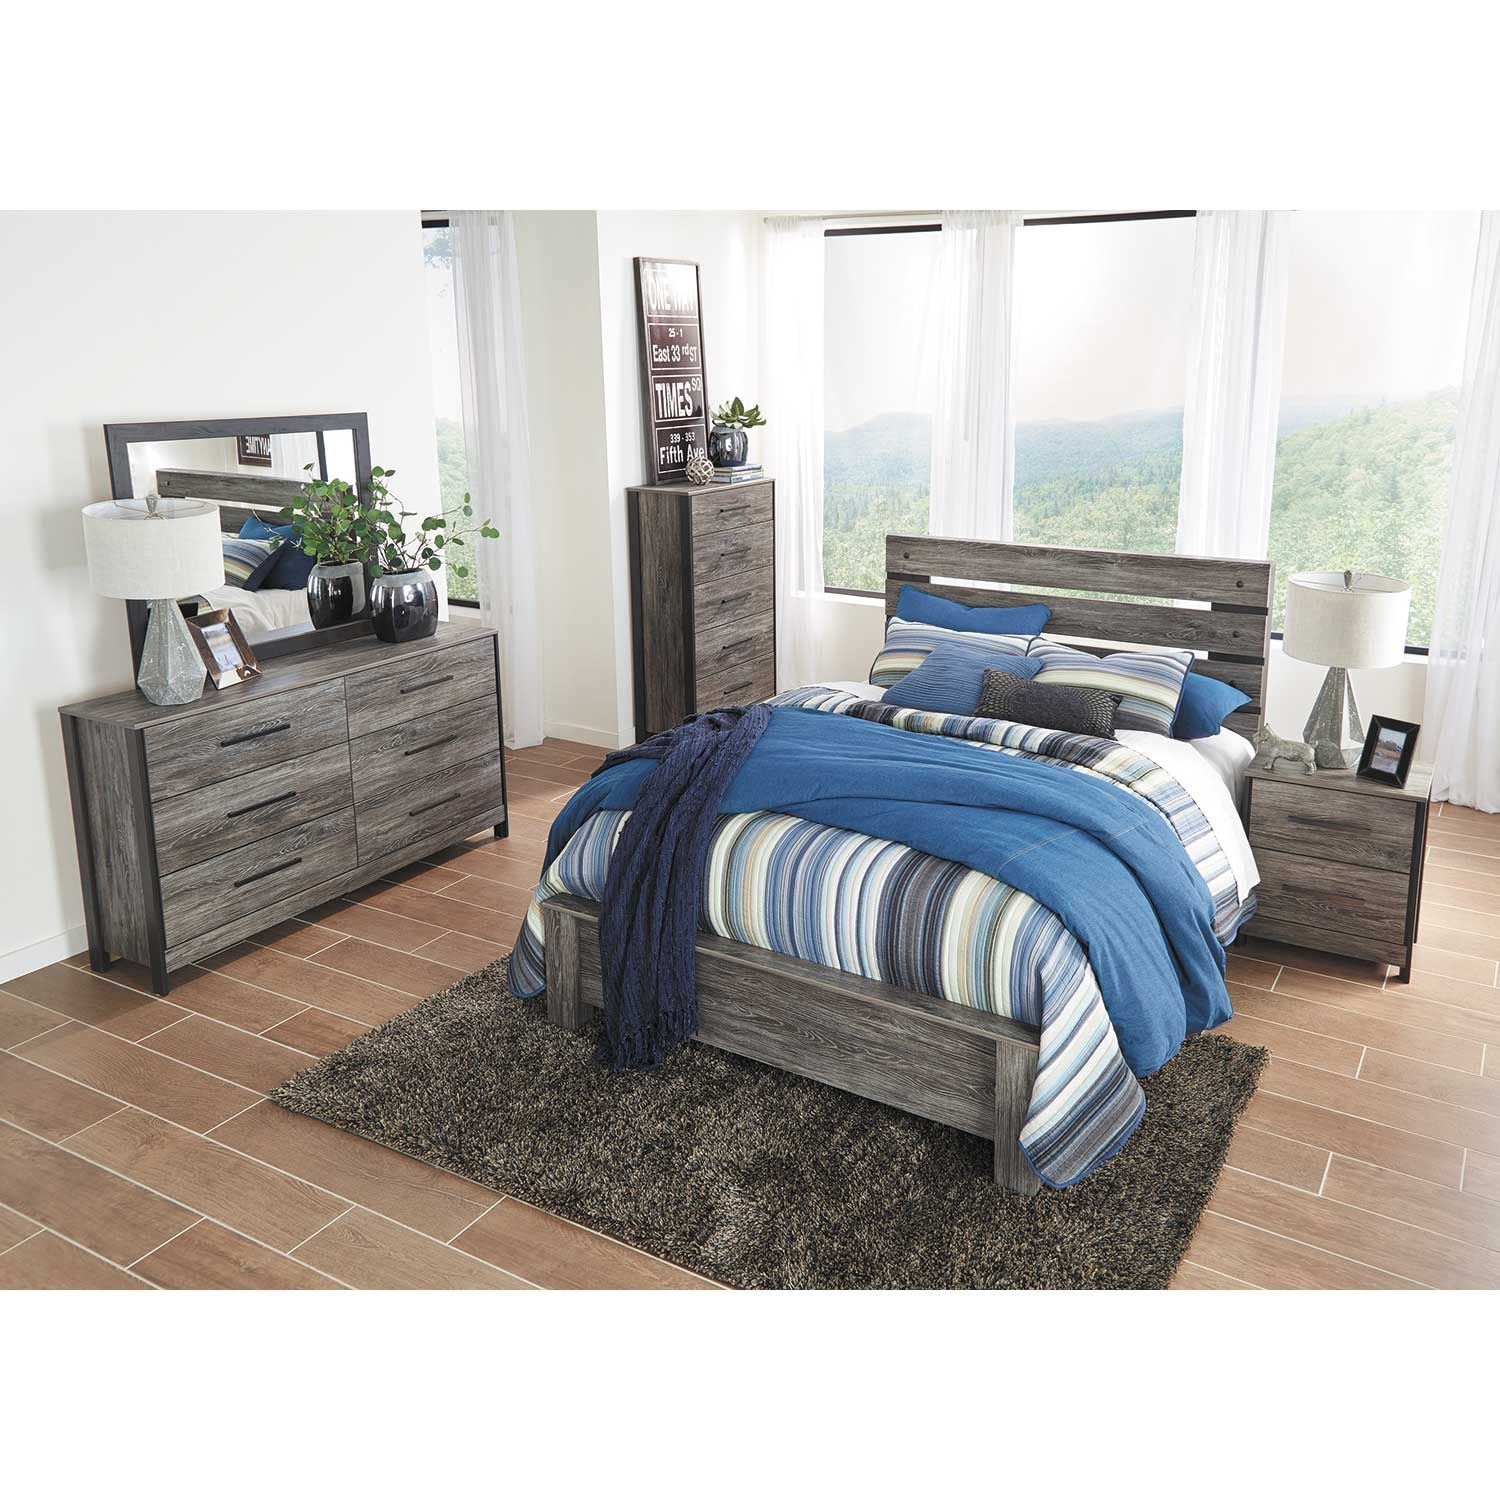 Ashley Furniture Manufacturers: Cazenfeld King Bed At AFW